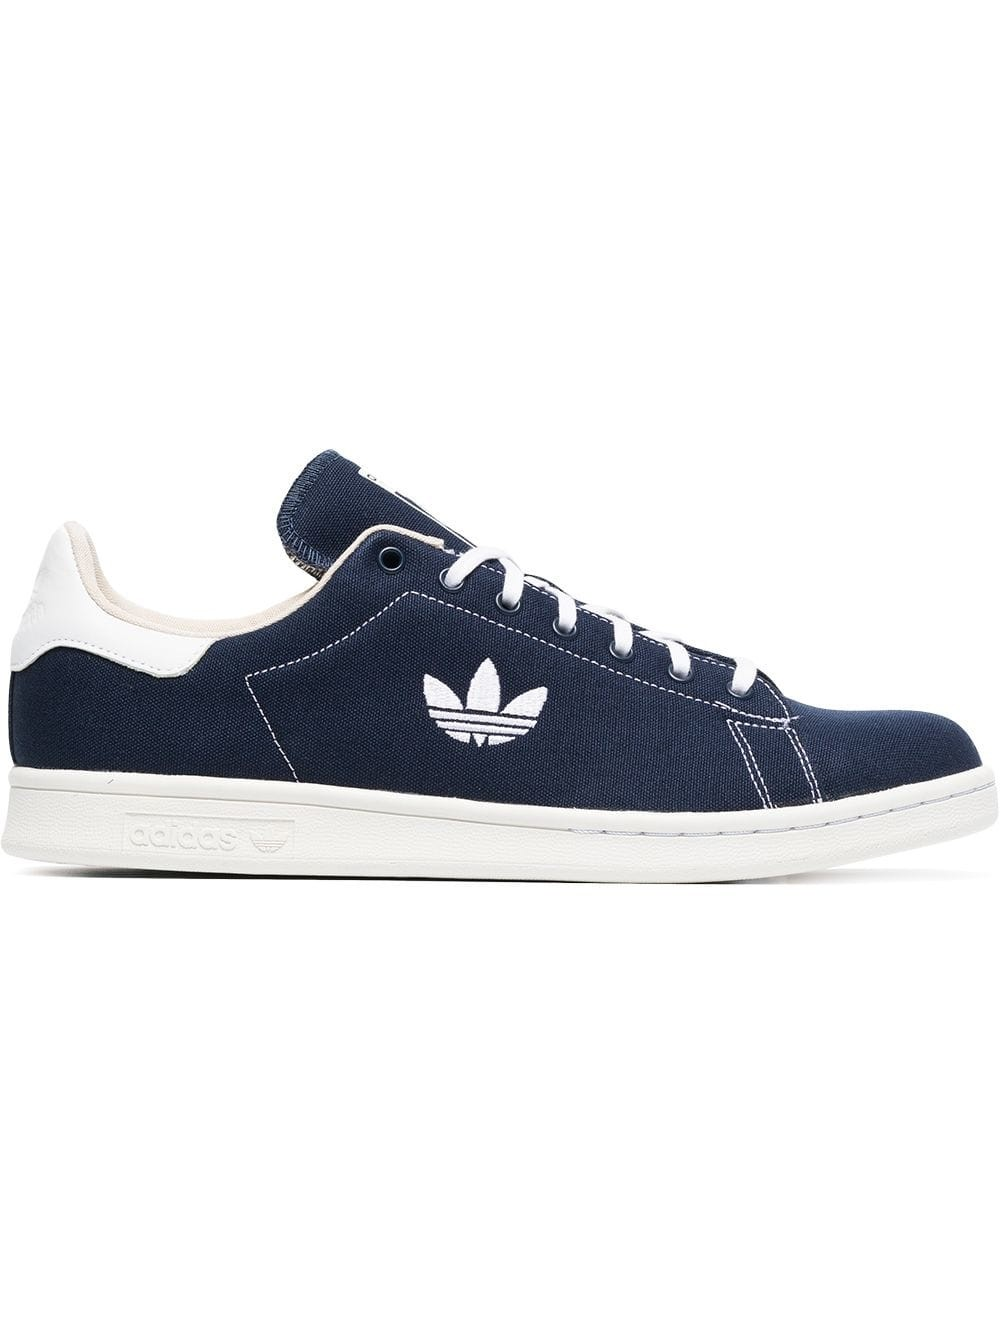 detailed look 6076c 6e2da Adidas Stan Smith Collegiate Navy AQ0836